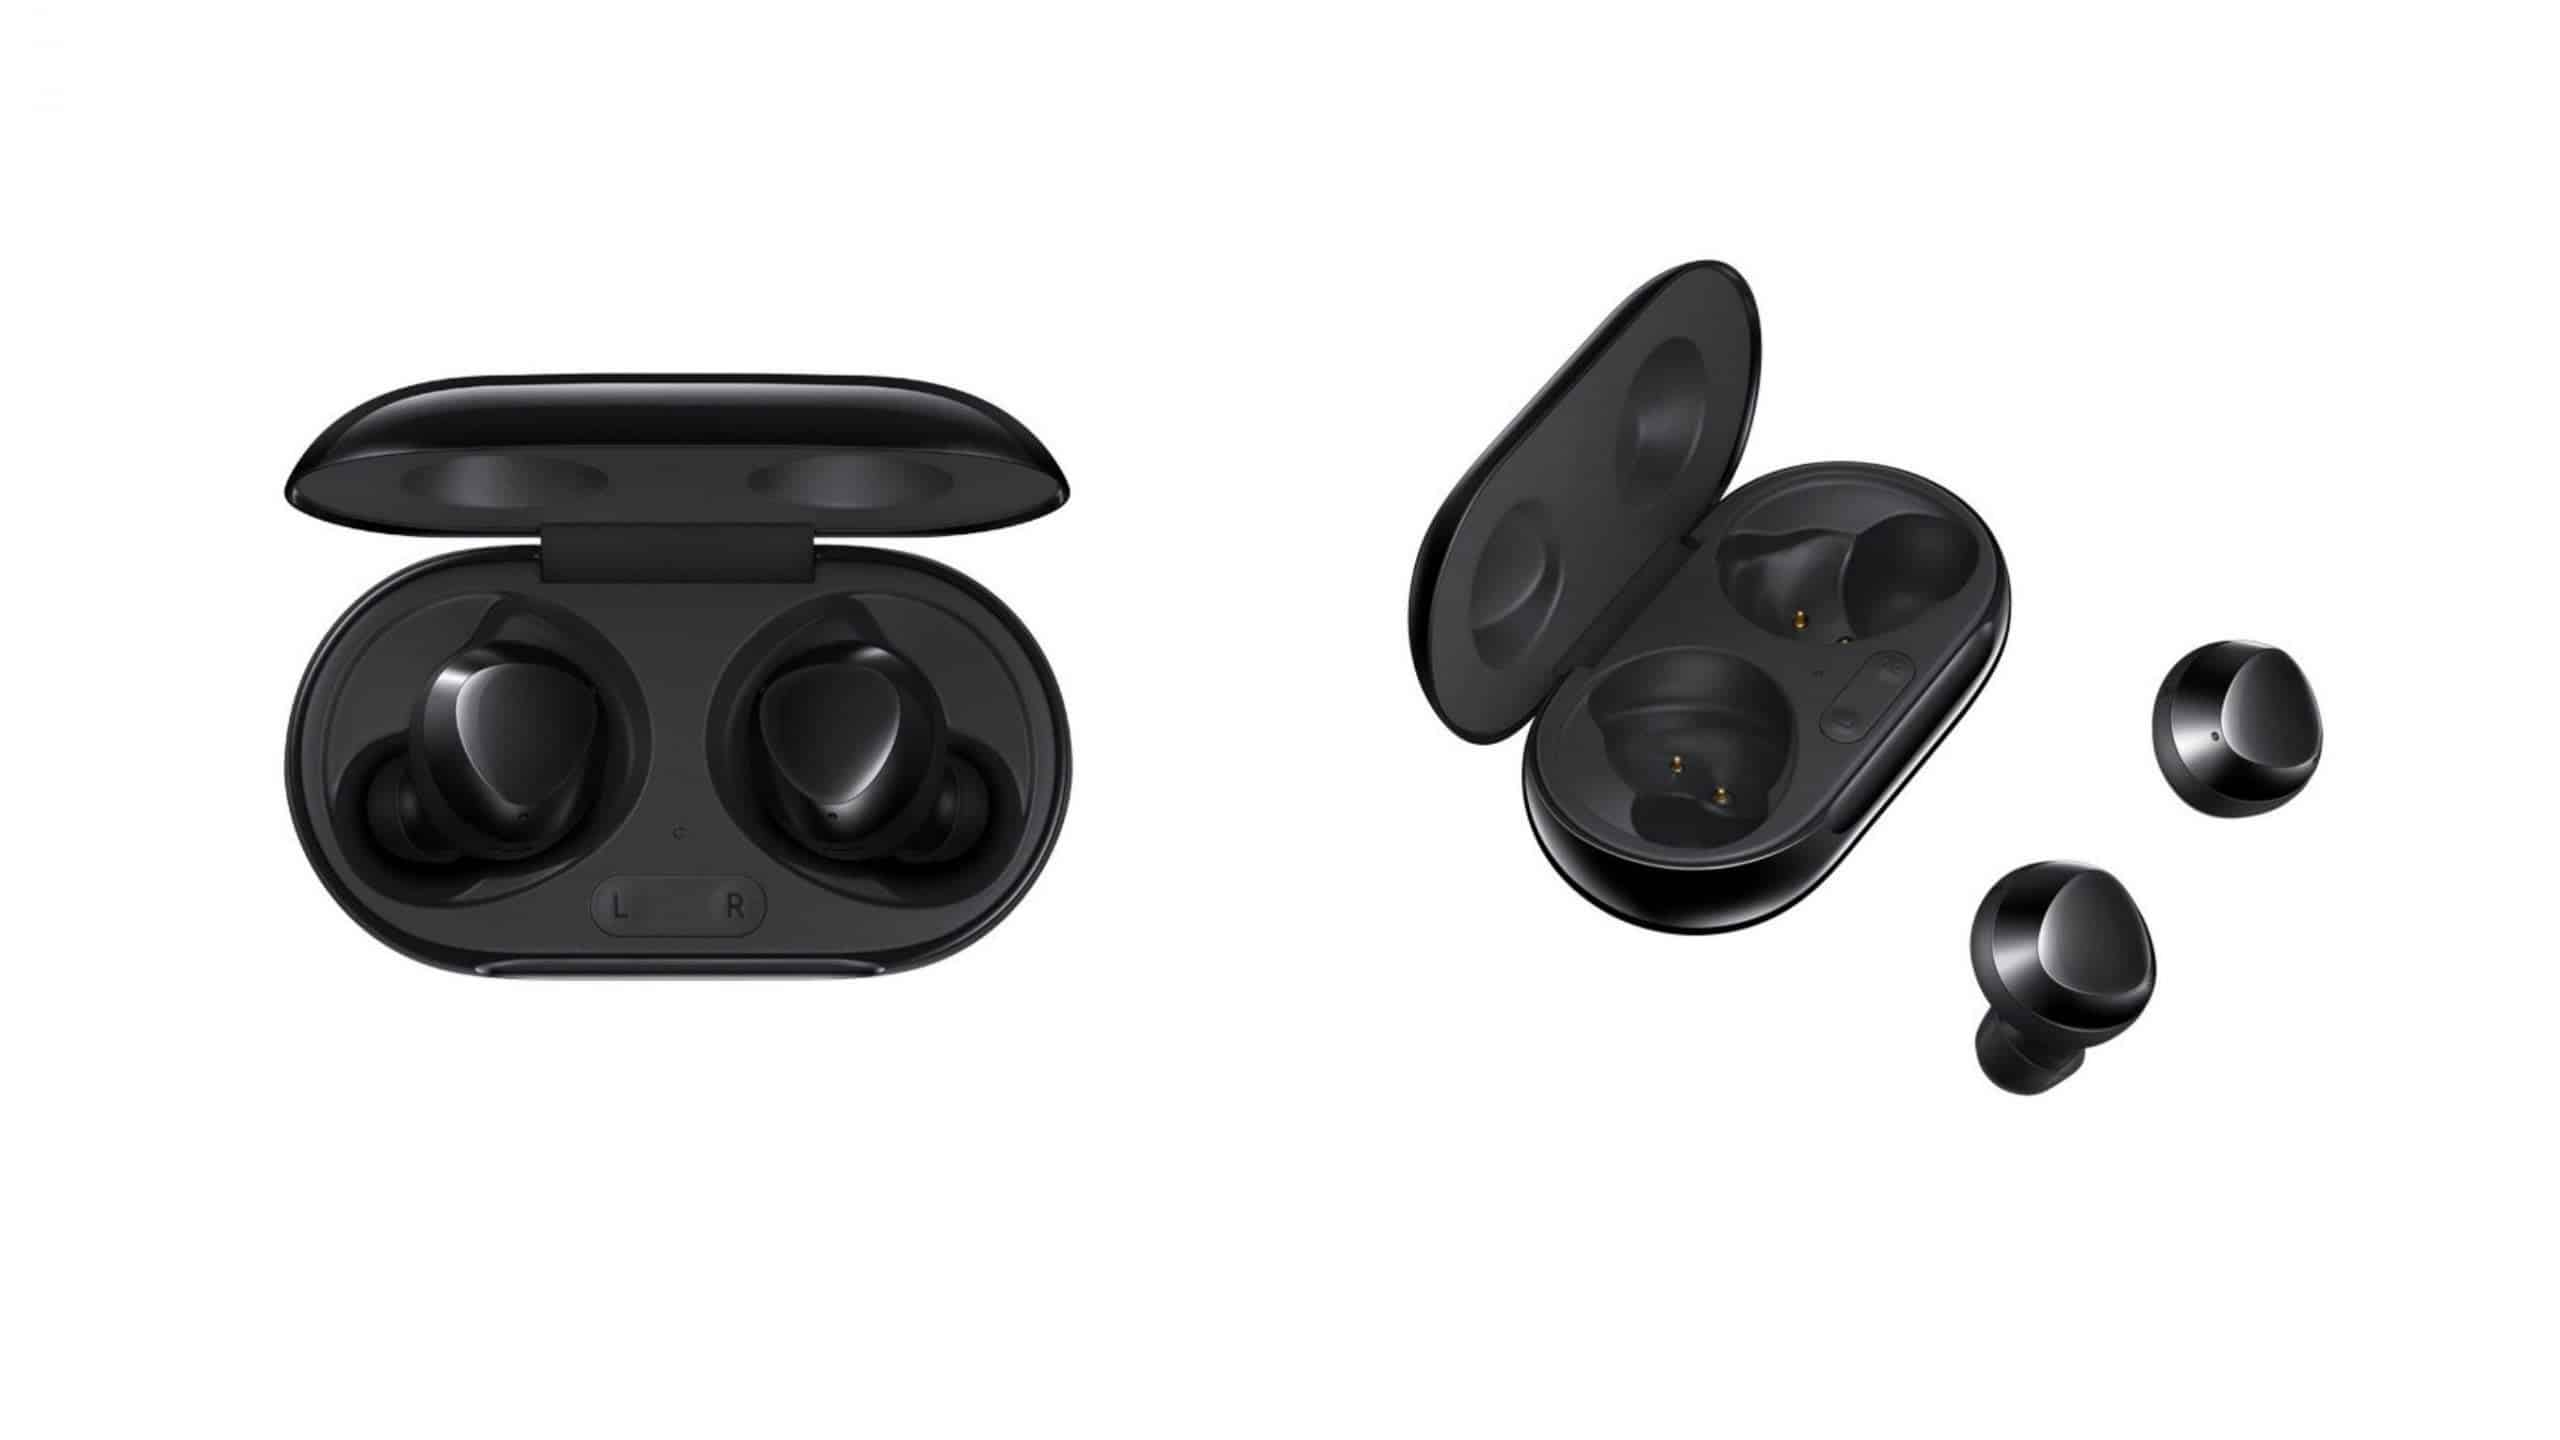 Samsung Galaxy Buds+ Full Specs and Price Leaked